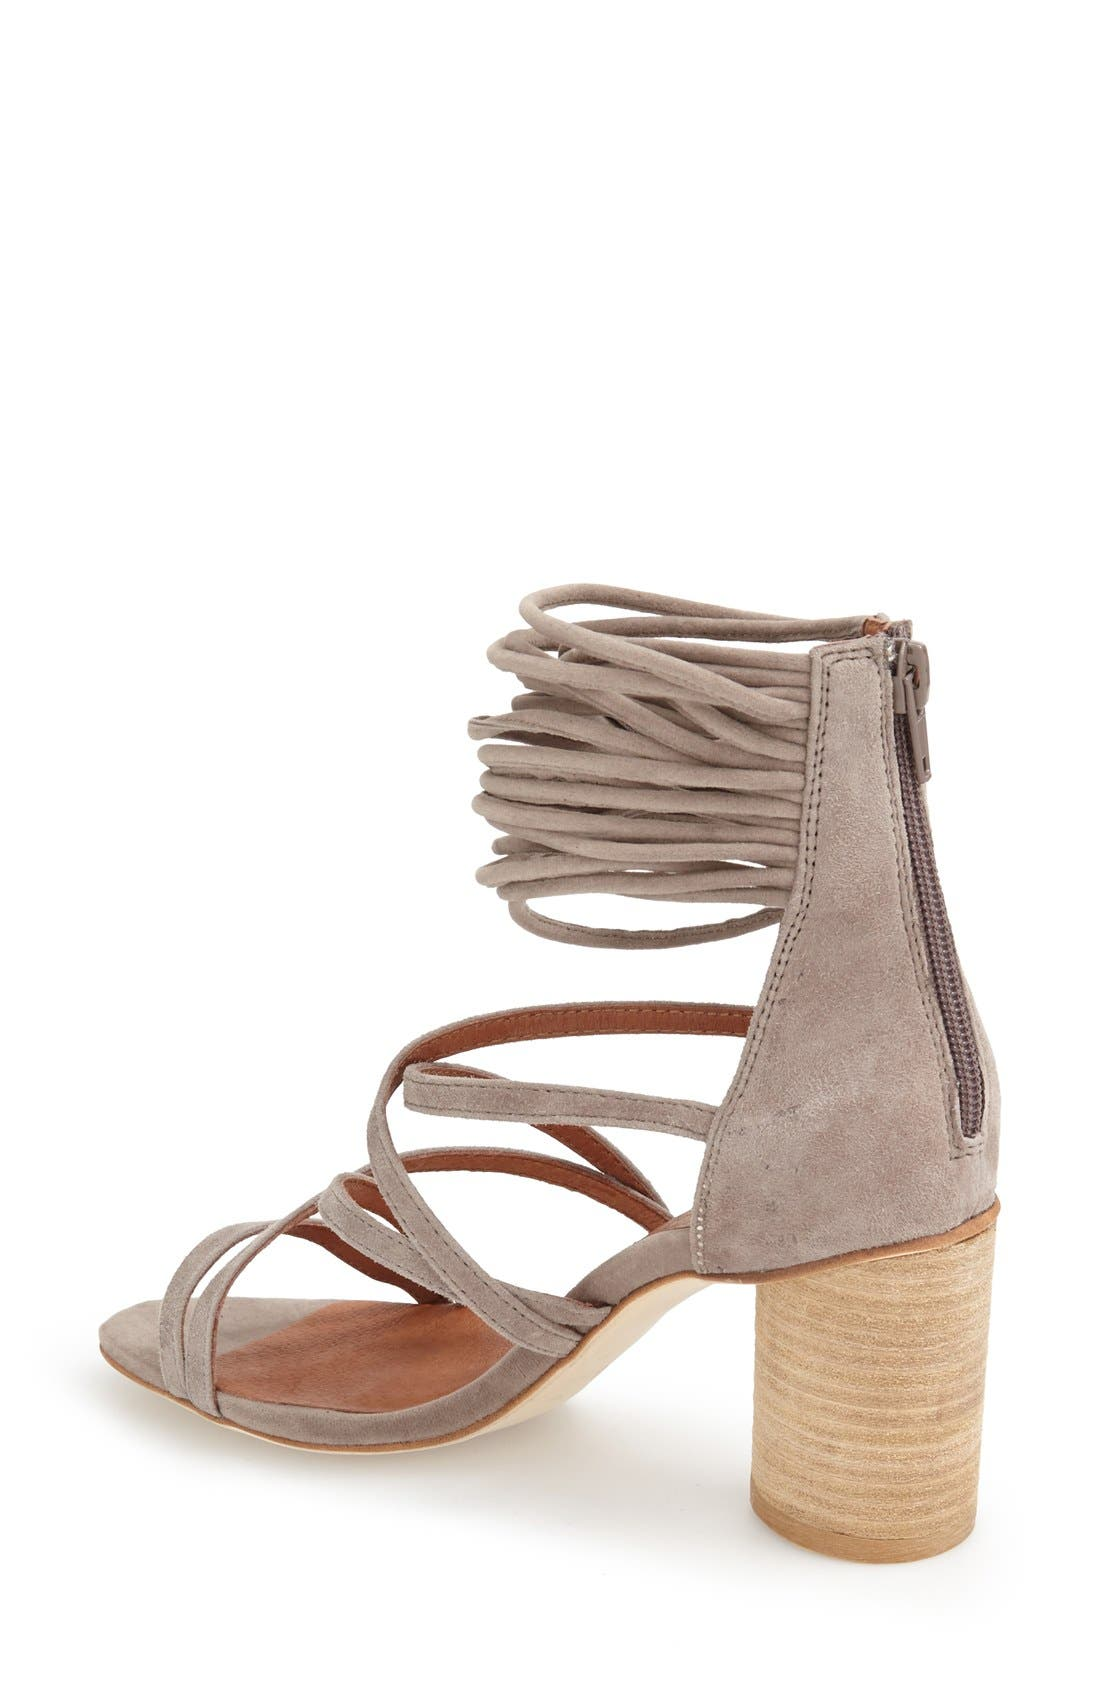 'Despina' Strappy Sandal,                             Alternate thumbnail 2, color,                             TAUPE SUEDE